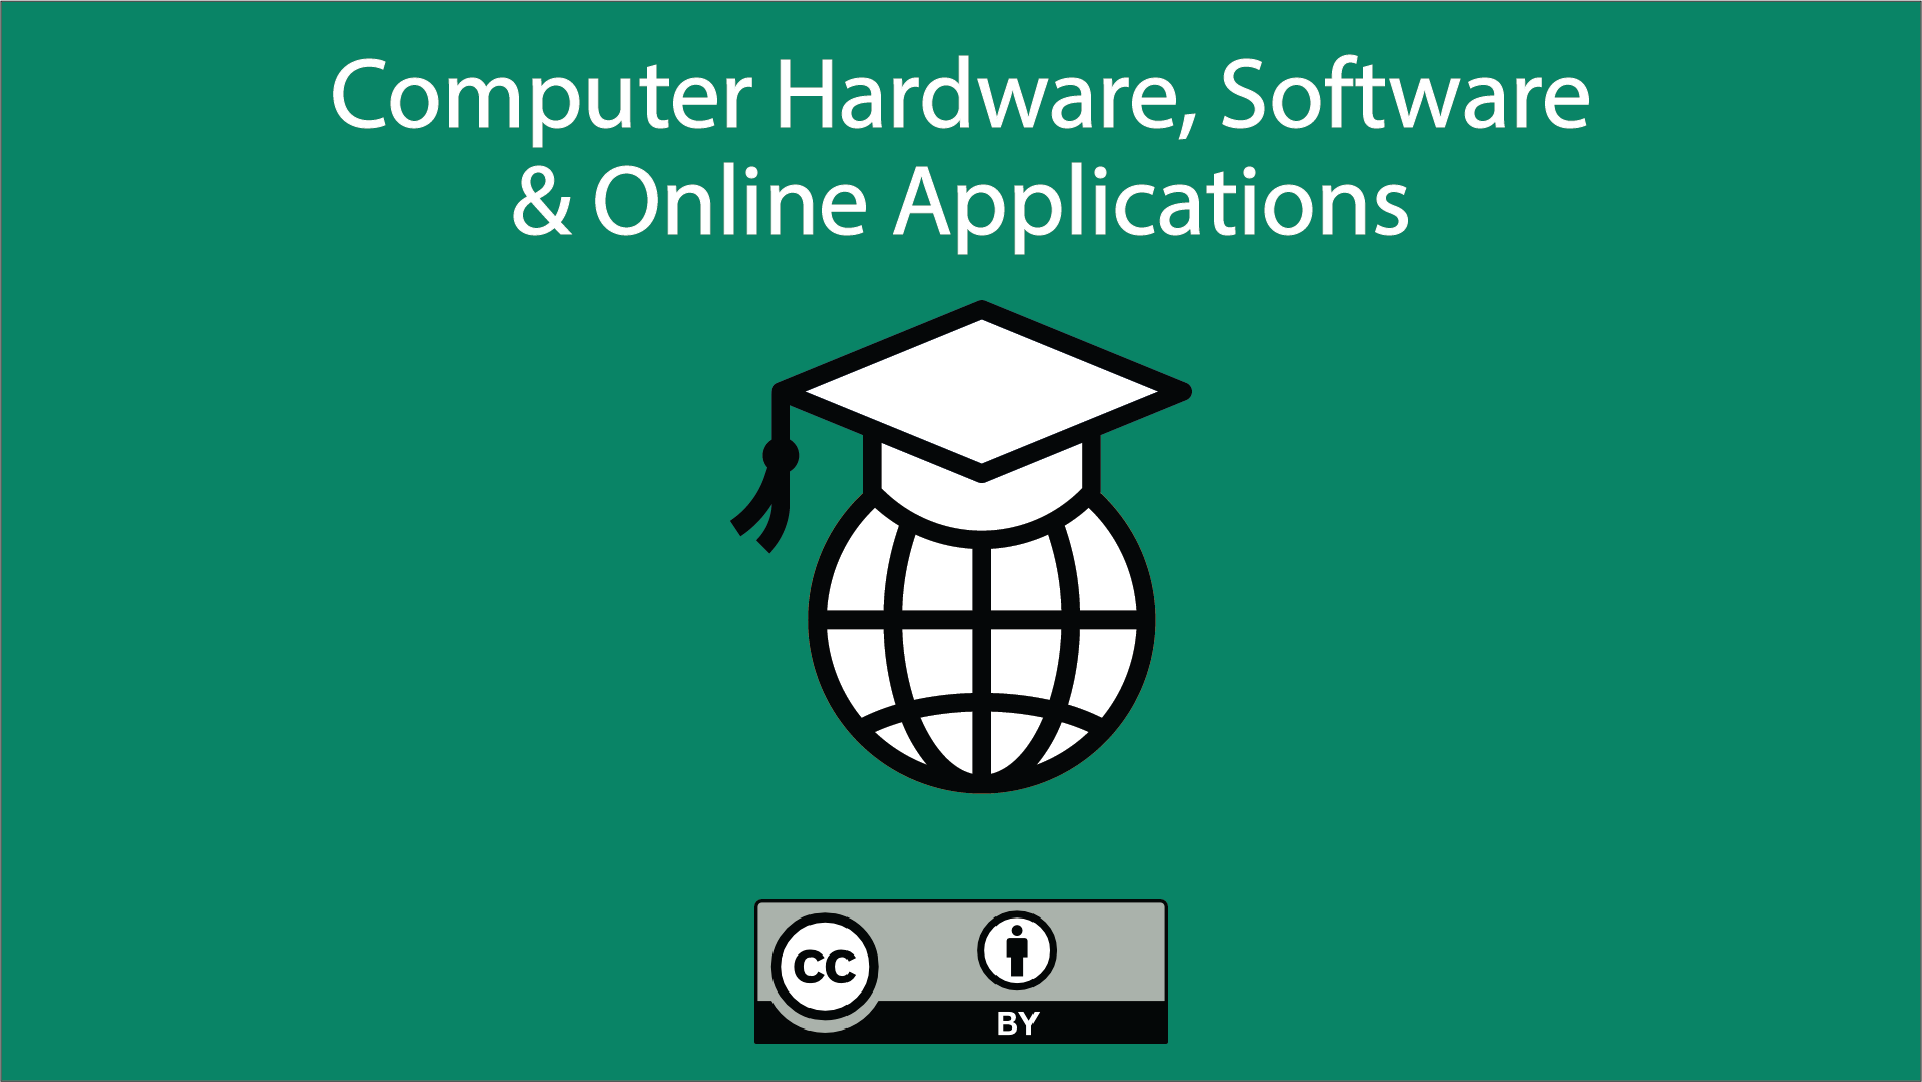 Computer Hardware, Software & Online Applications